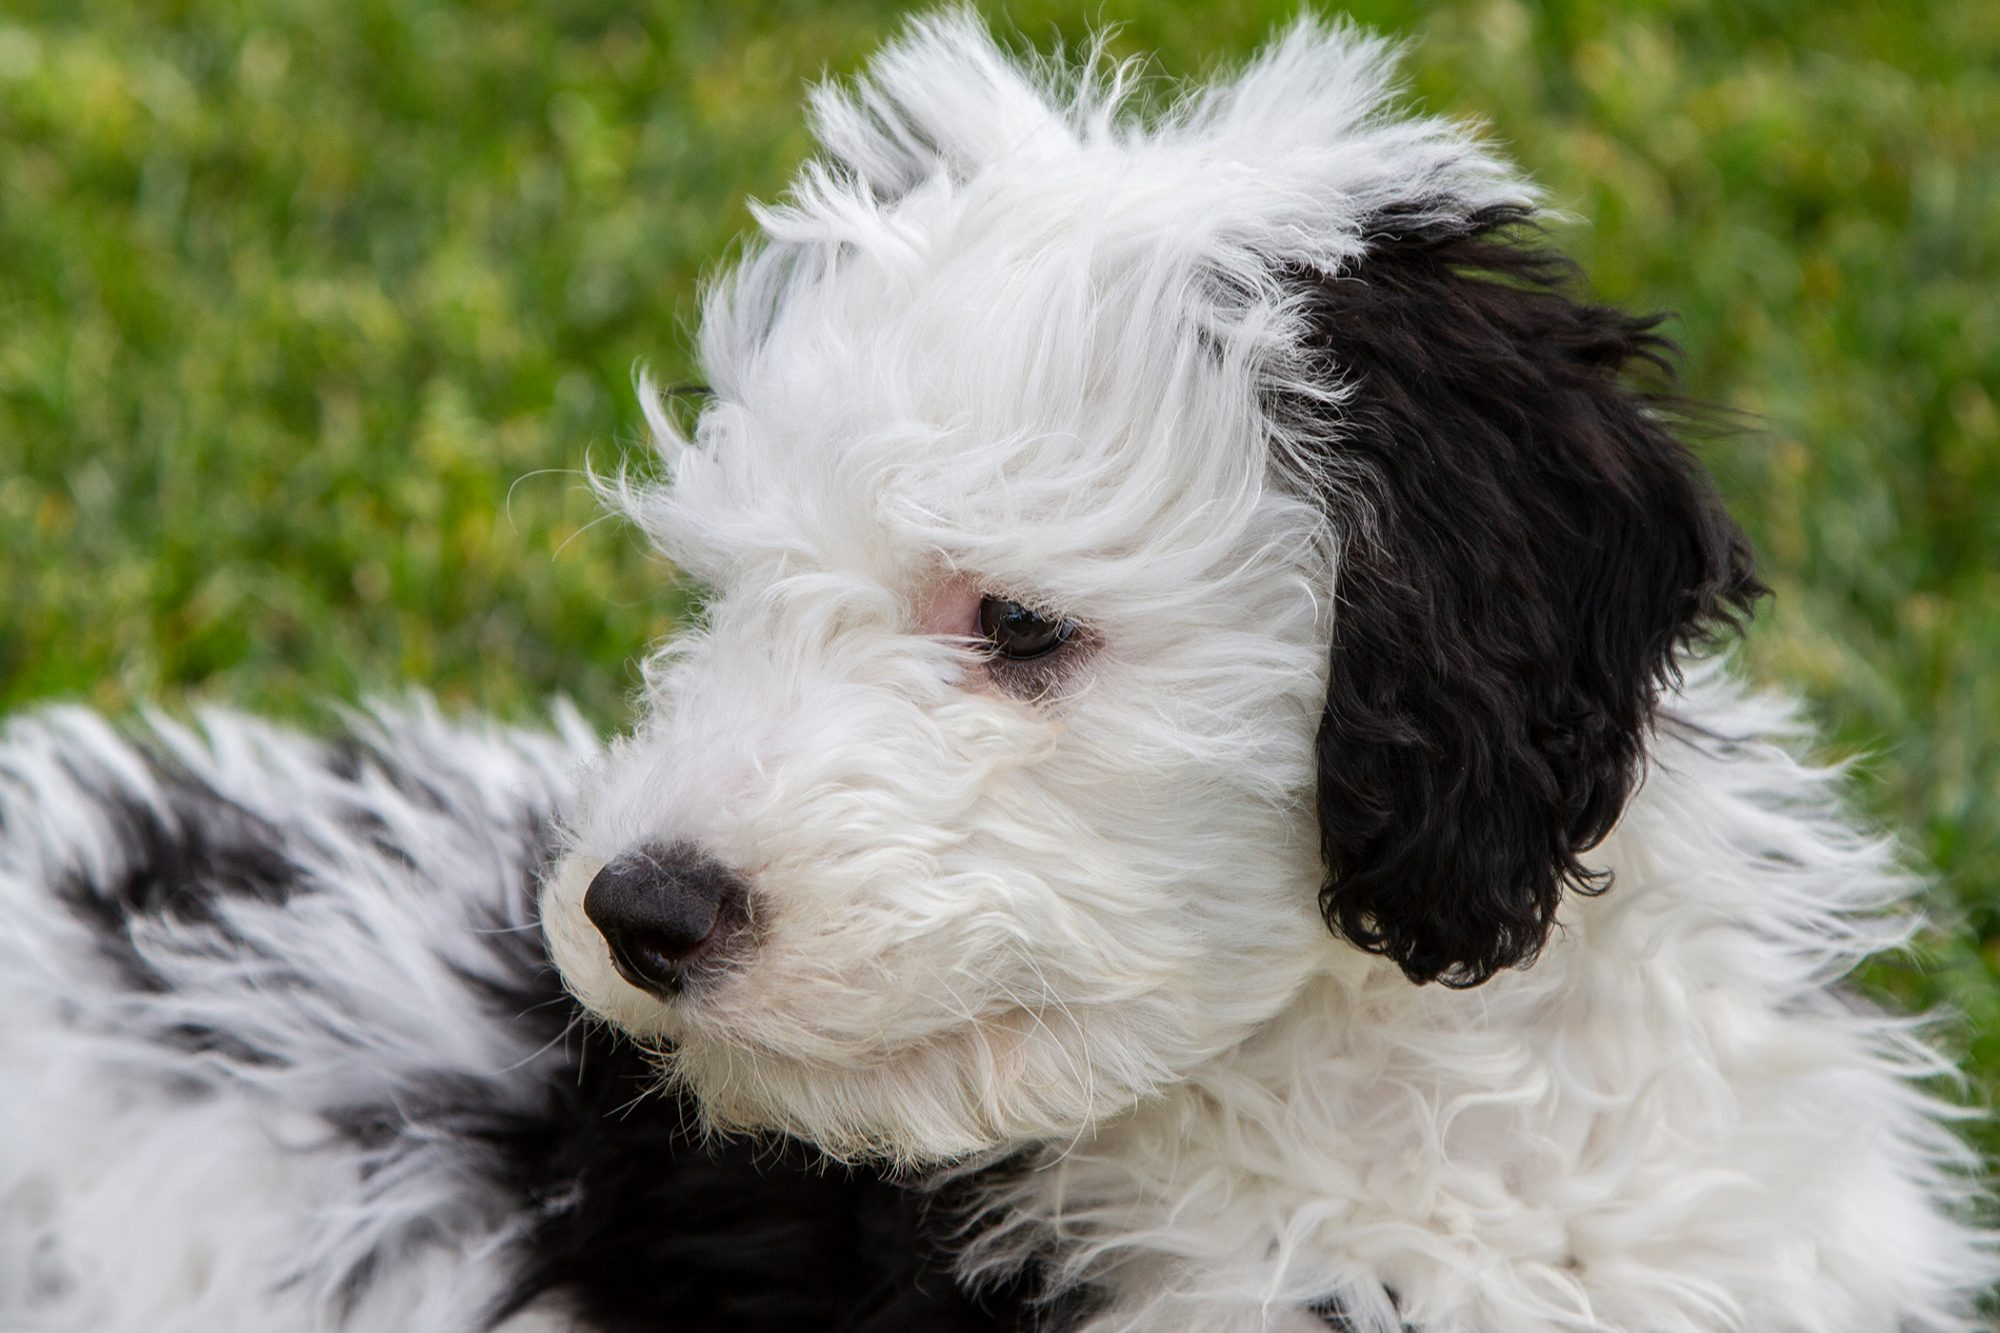 closeup of a sheepadoodle puppy sitting outside in the grass